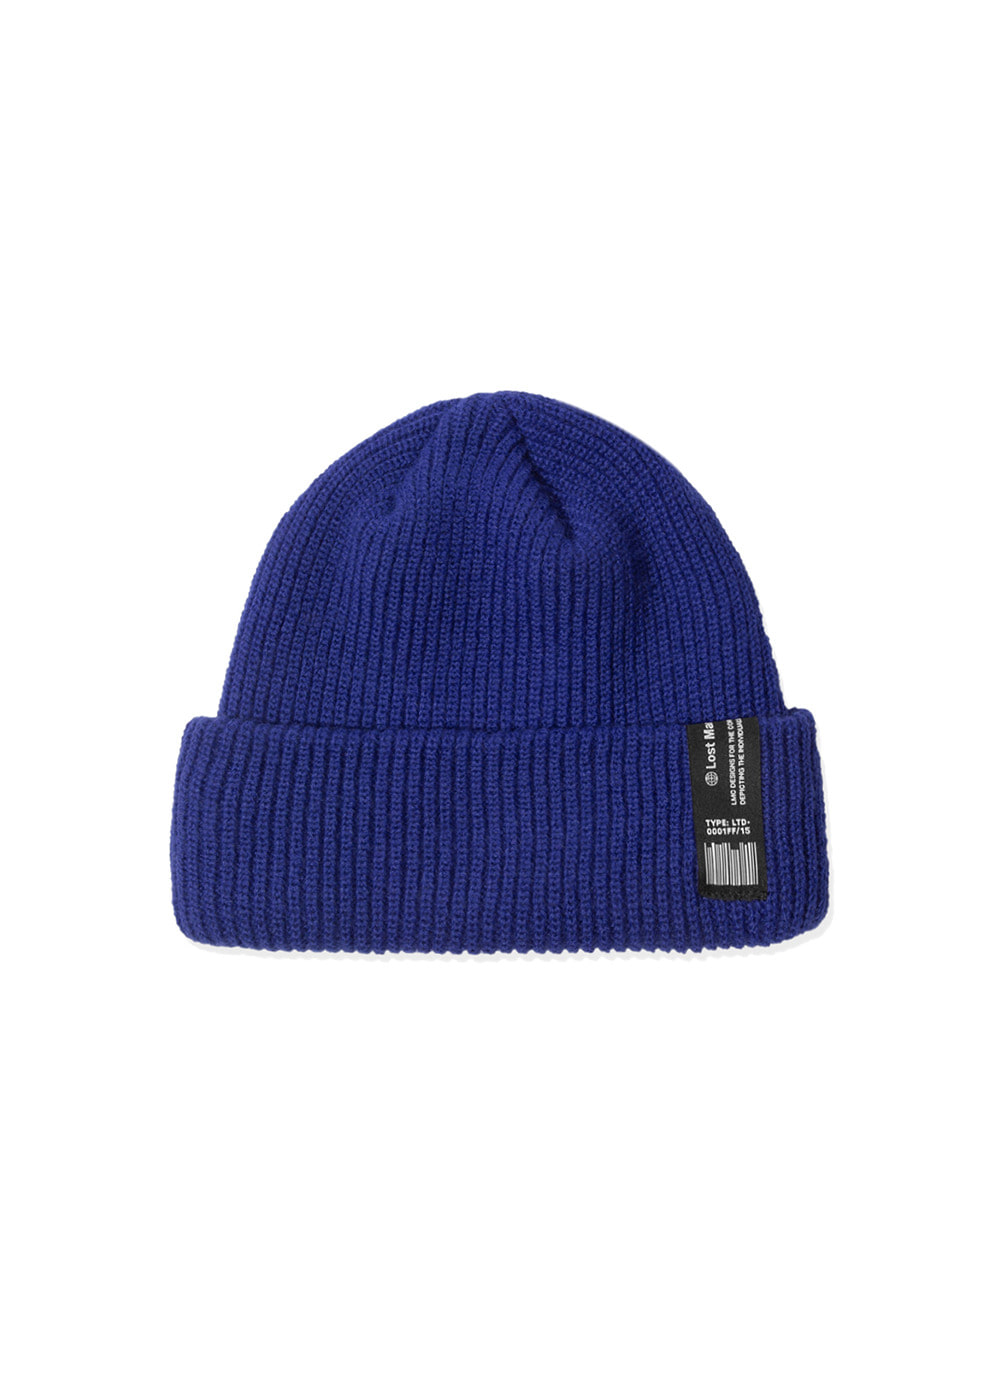 LMC LABEL SHORT BEANIE royal blue